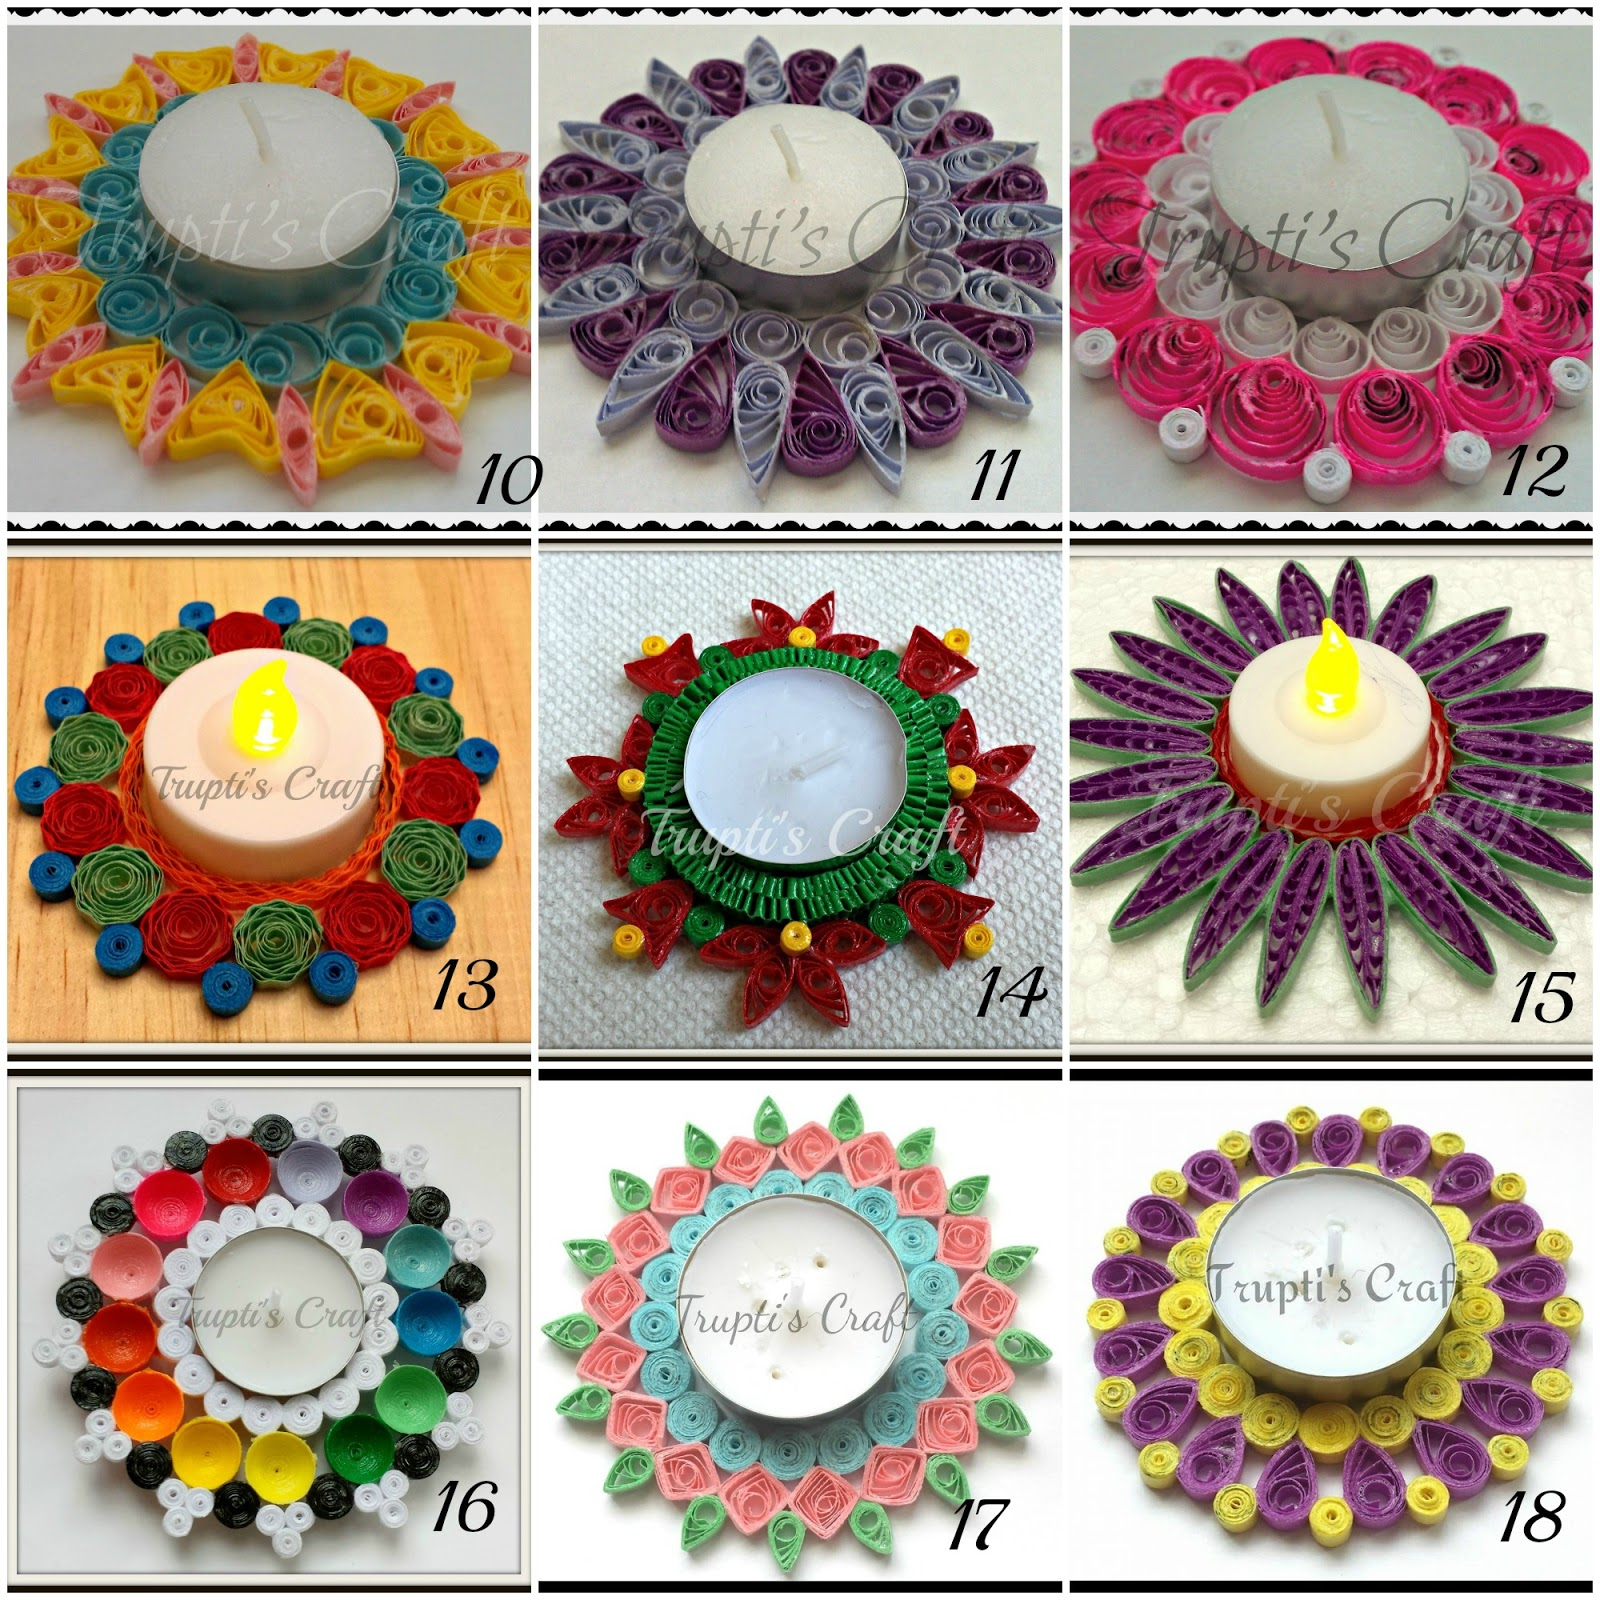 Trupti 39 s craft paper quilling candle holders car for Crafts and hobbies ideas